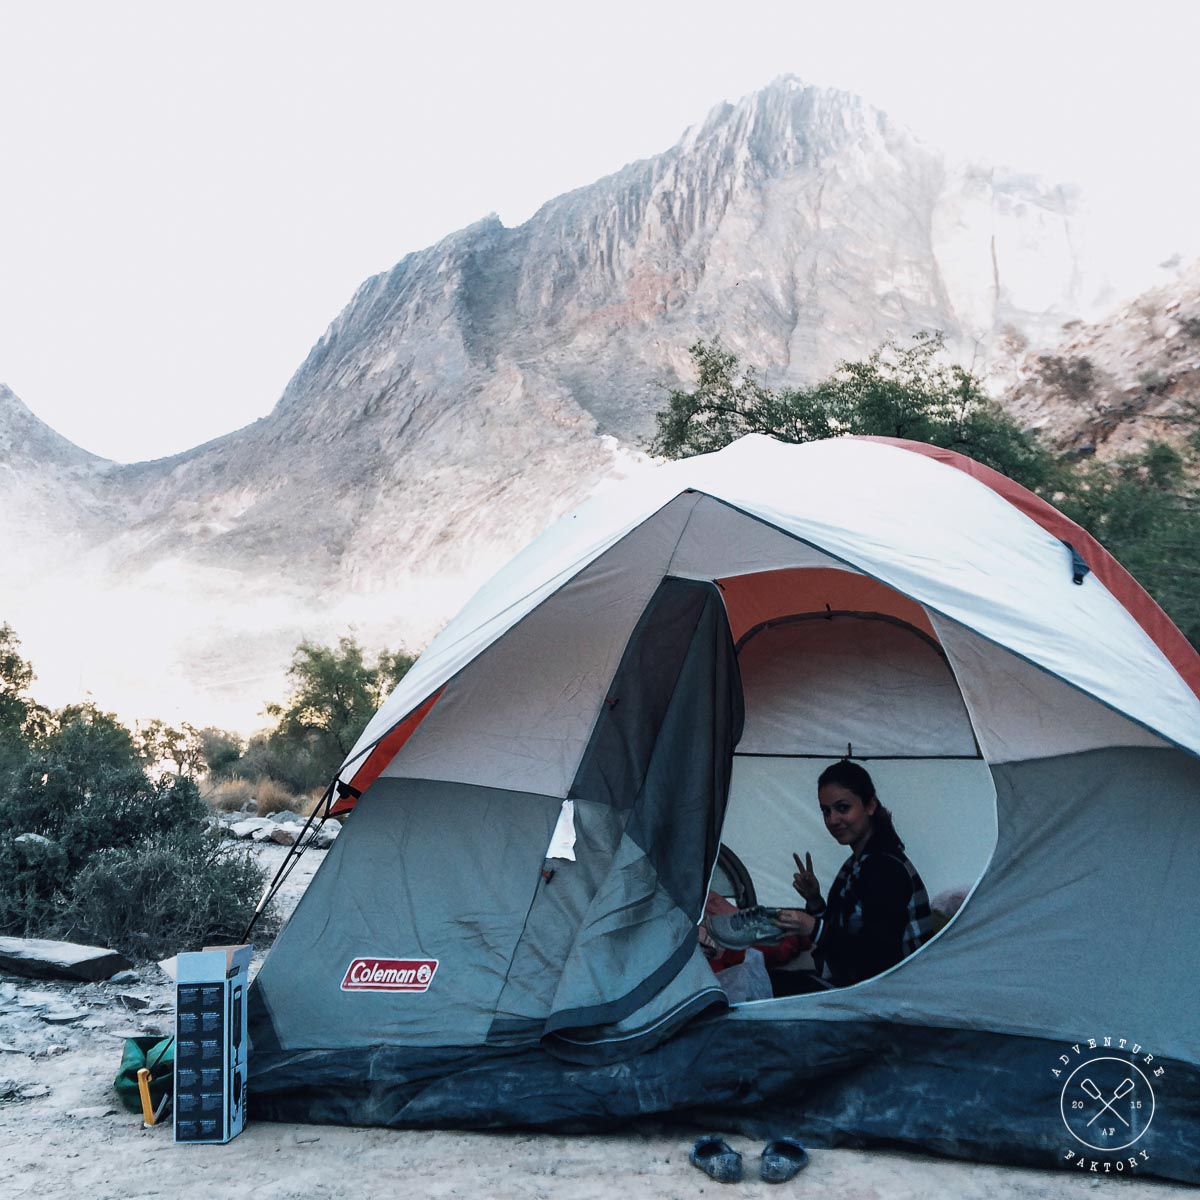 Camping in Jebel Shams, Oman